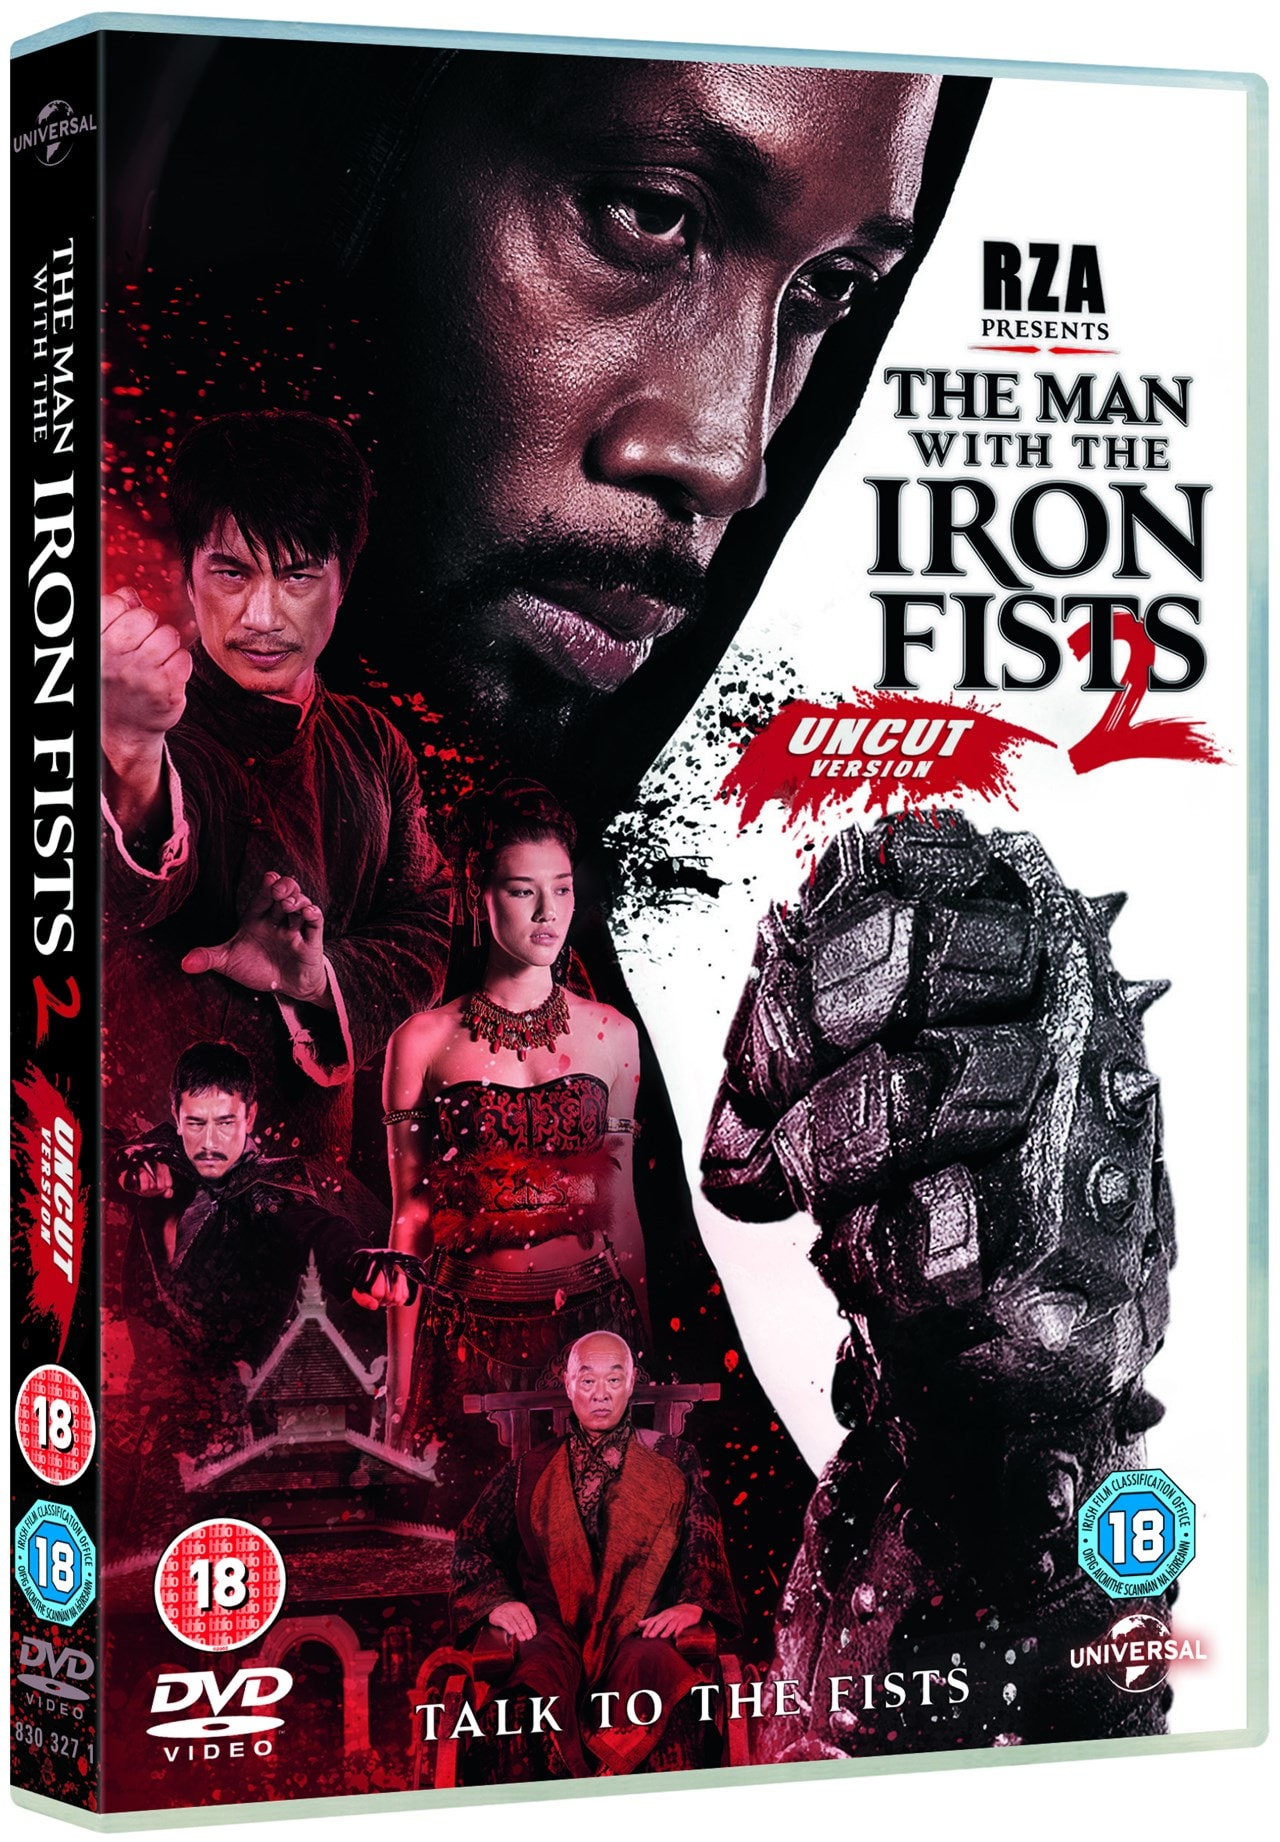 The Man With the Iron Fists 2 - Uncut - 2